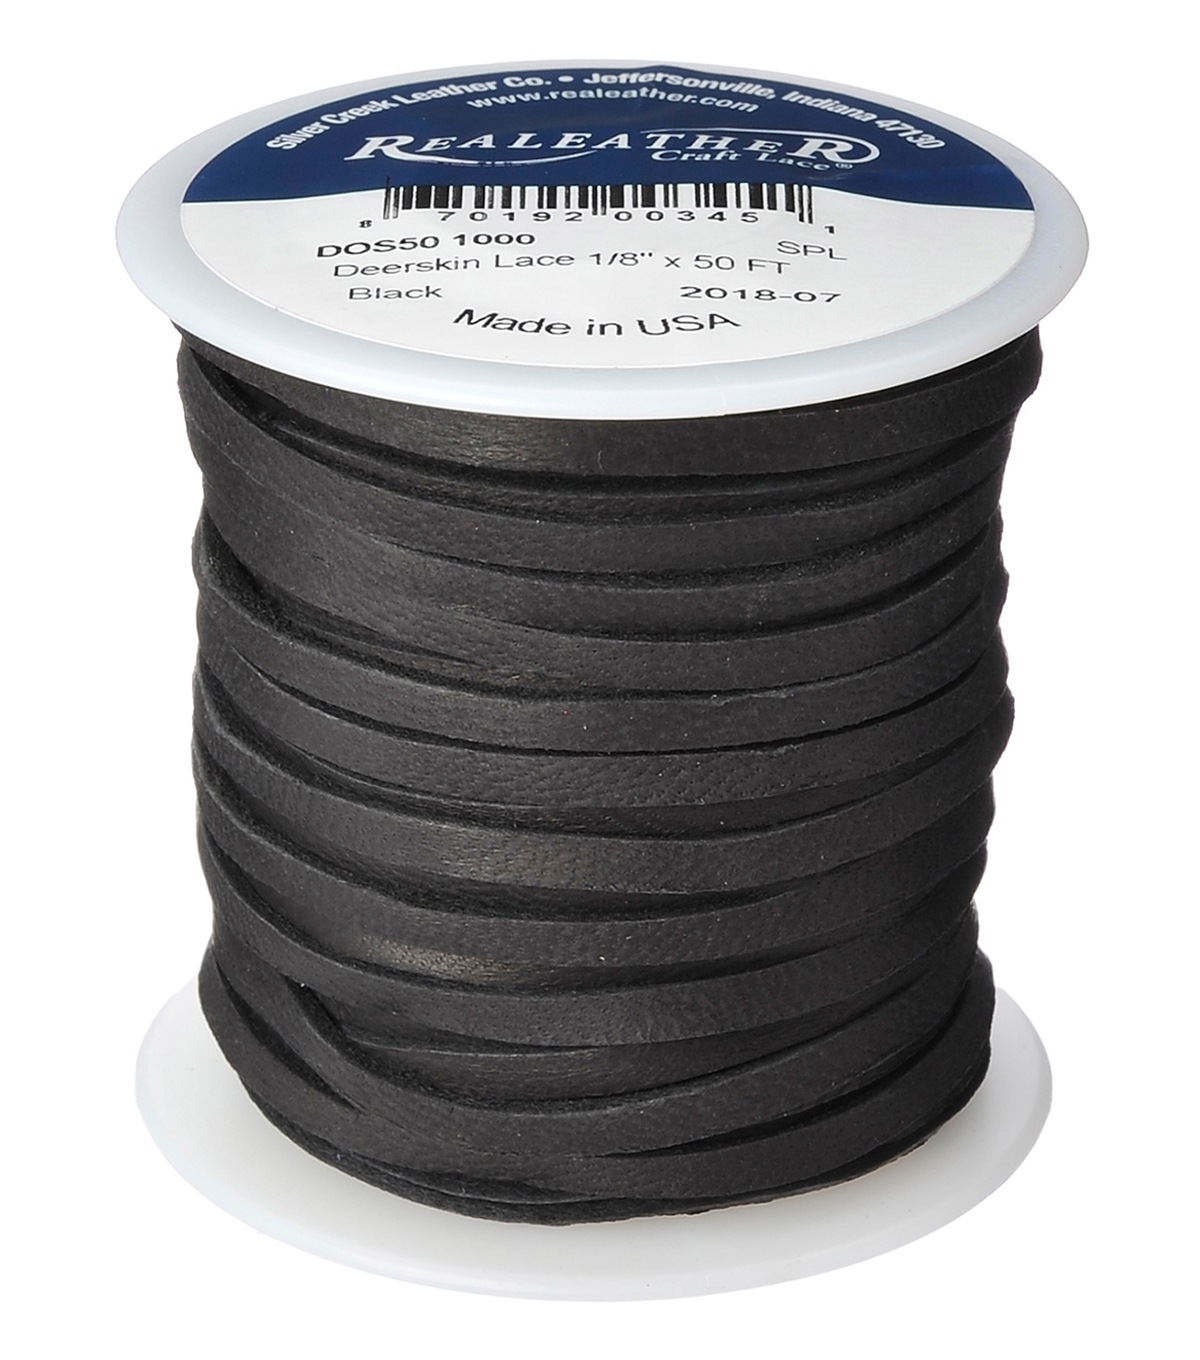 Realeather Crafts Leather Lace 50\u0027 Spool-Black